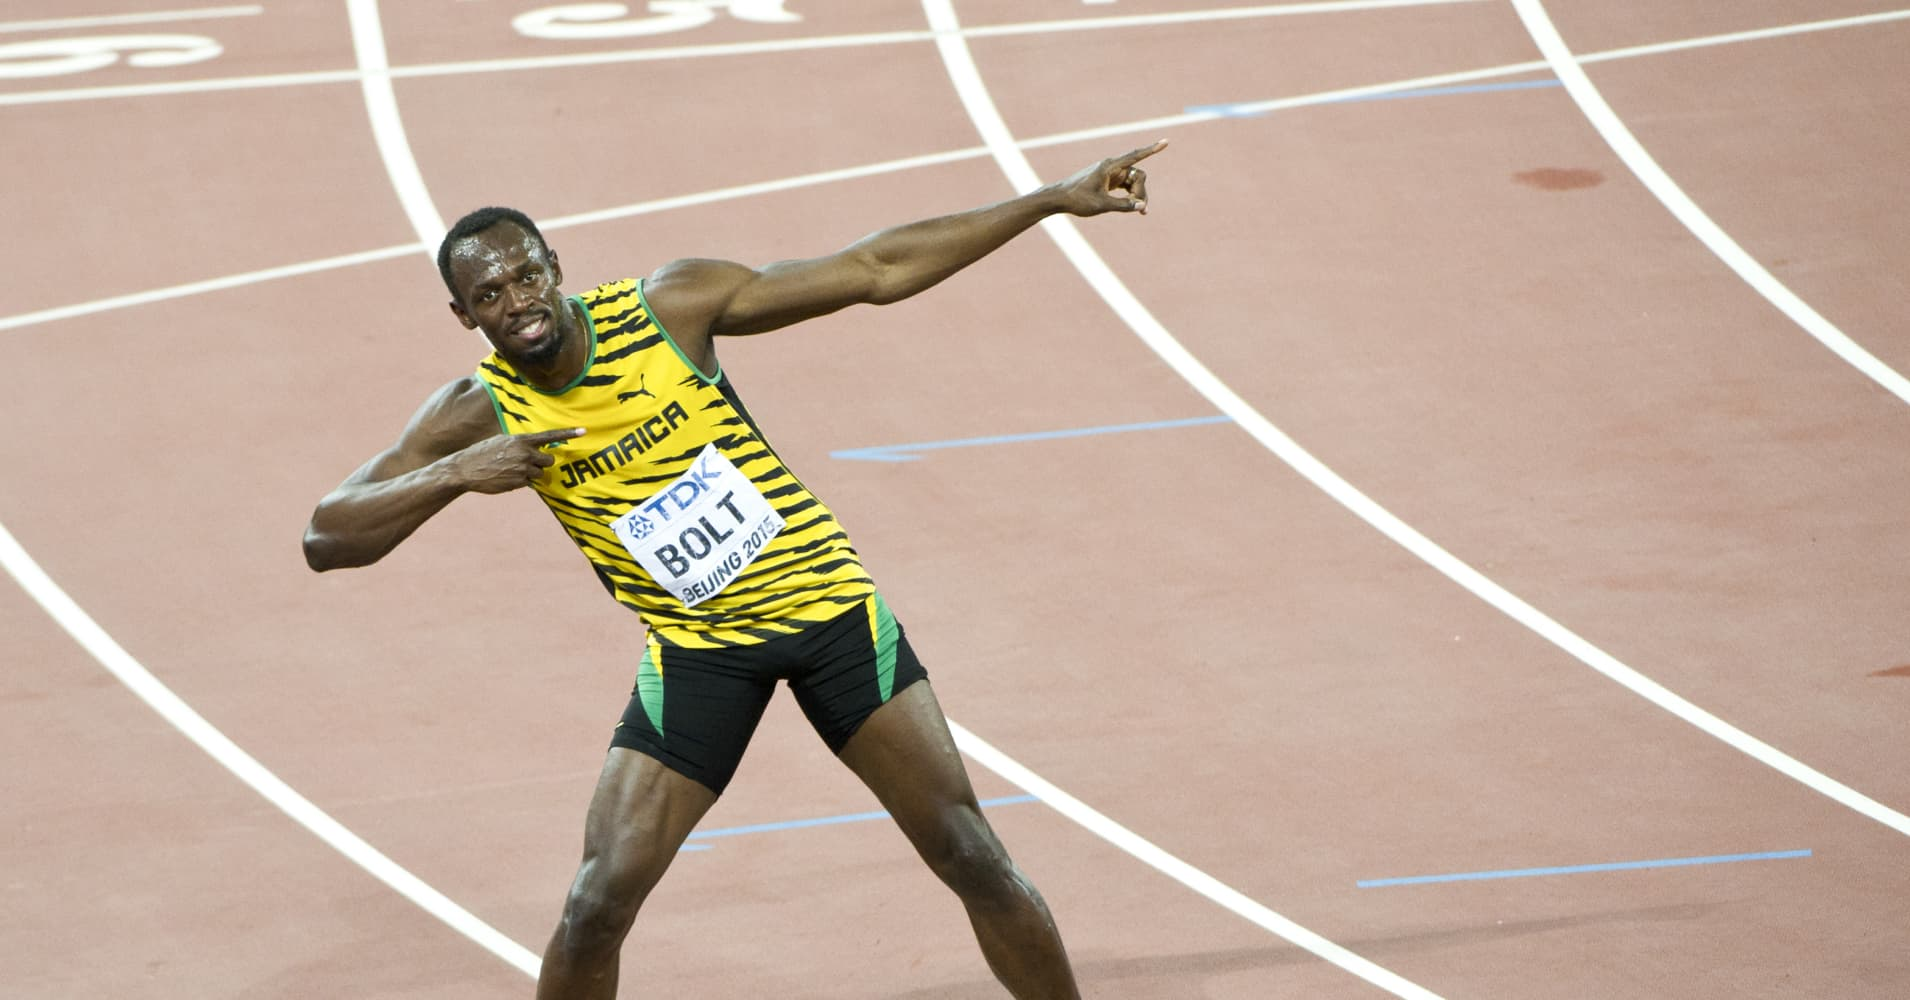 Michael Johnson tells Usain Bolt it is time to find a passion after sport